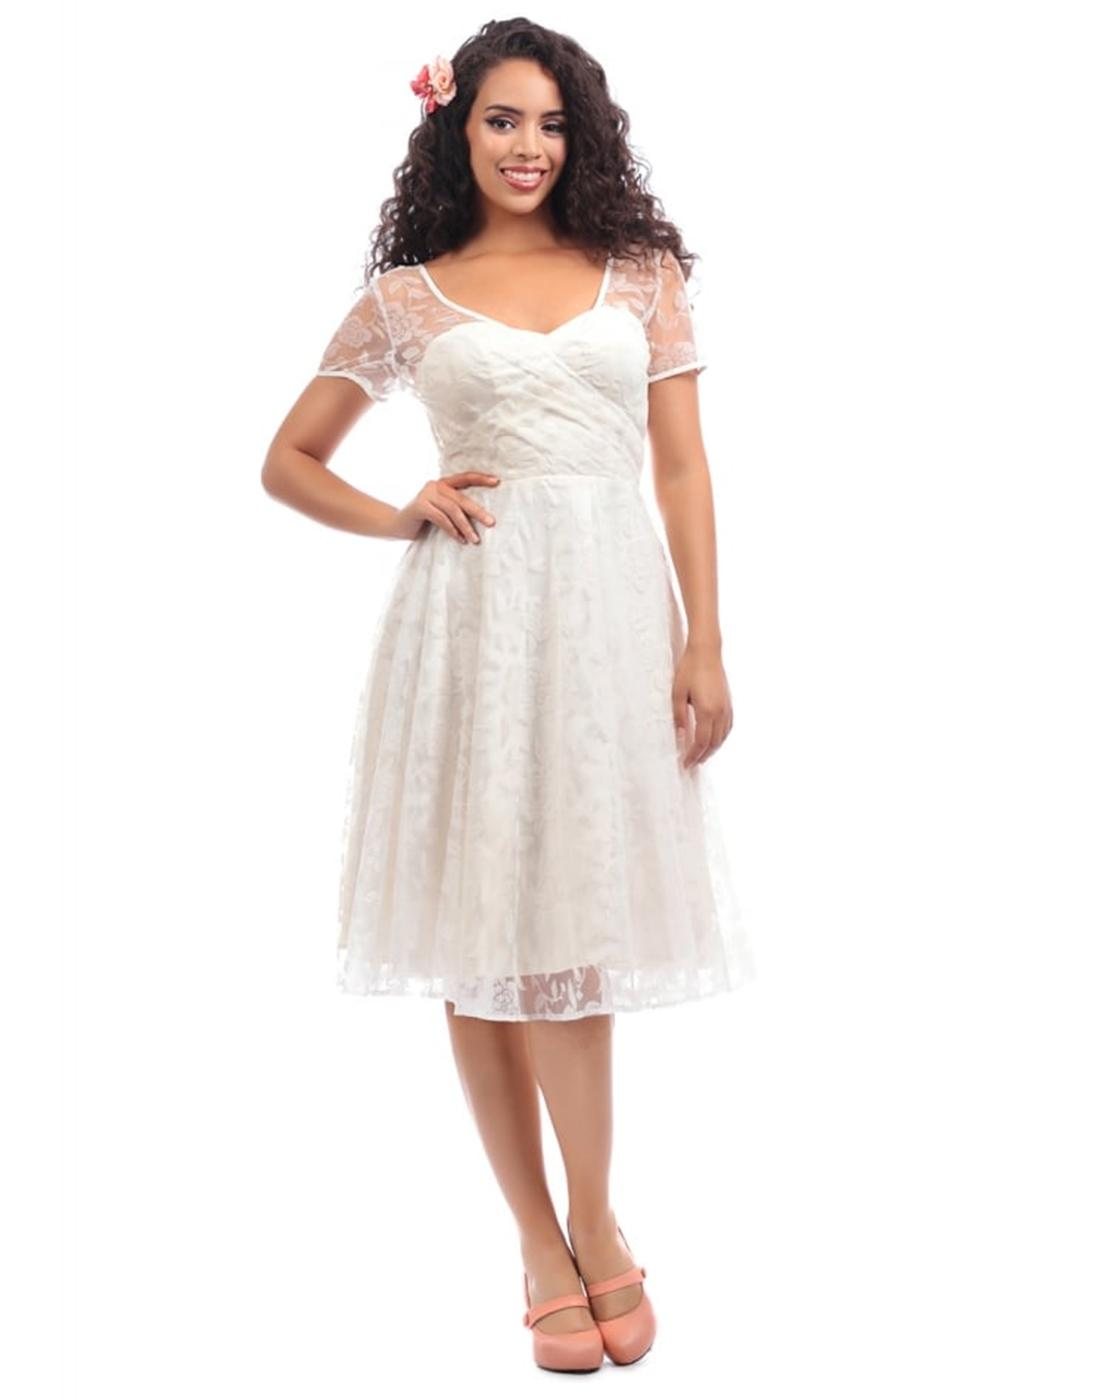 Nina COLLECTIF Vintage 50s Wedding or Prom Dress